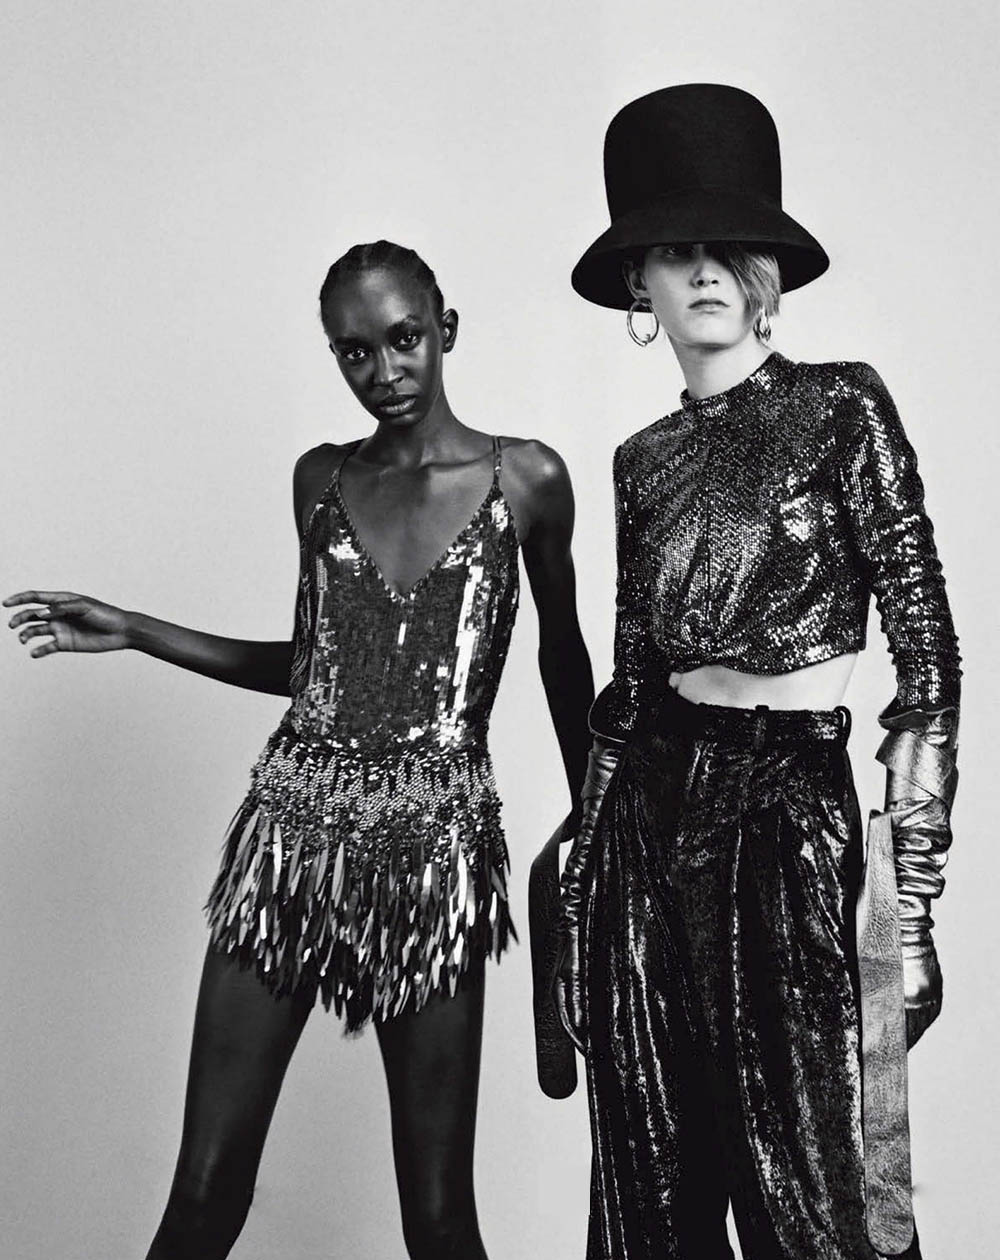 Nicole Atieno and Tessa Bruinsma by Alexandre Guirkinger for Vogue Italia November 2019